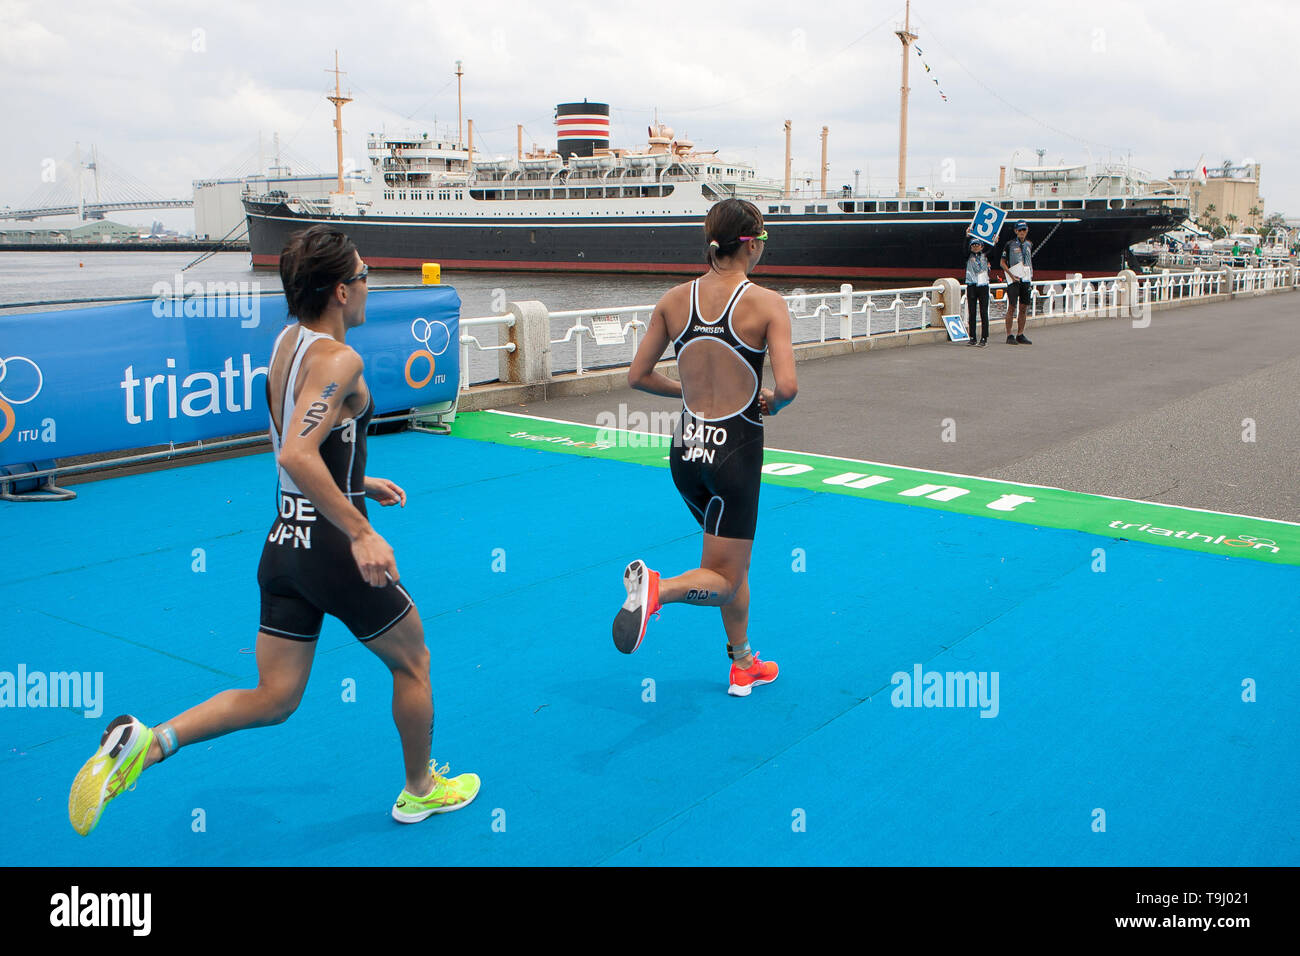 Yokohama, Japan. 18th May, 2019. 2019 ITU World Triathlon, World Paratriathlon Yokohama at Yamashita Park and Minato Mirai, Yokohama. Sato, Ide (Photos by Michael Steinebach/AFLO) Credit: Aflo Co. Ltd./Alamy Live News Stock Photo